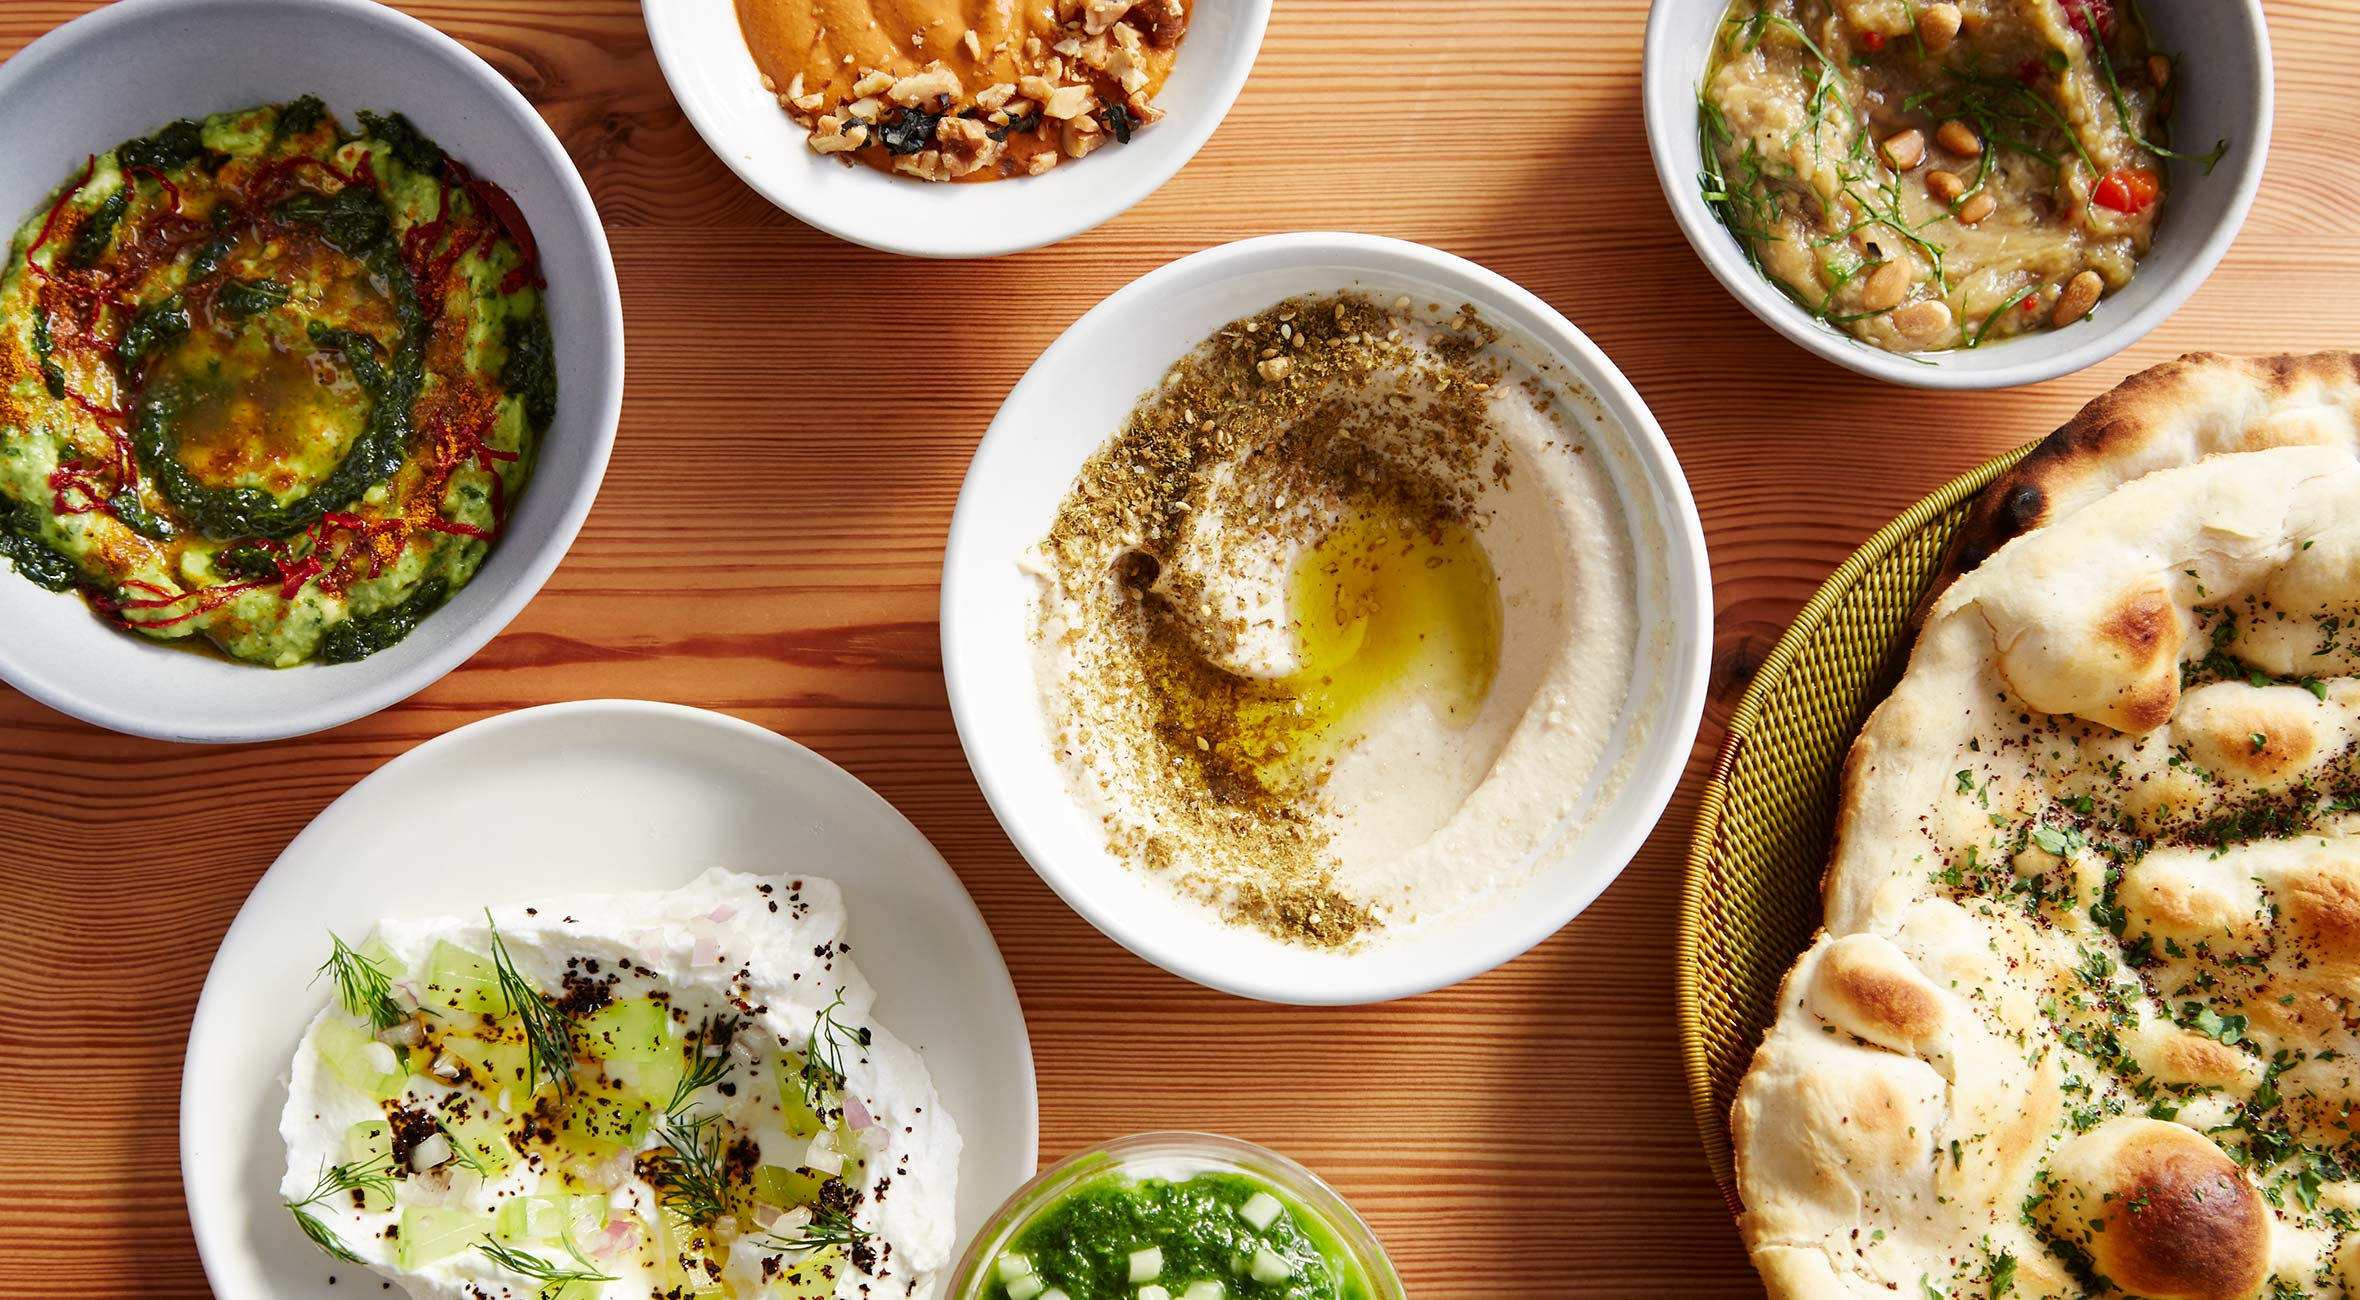 5-Course Menu at Nix in Greenwich Village – One of the World's Best Vegetarian and Vegan Restaurants